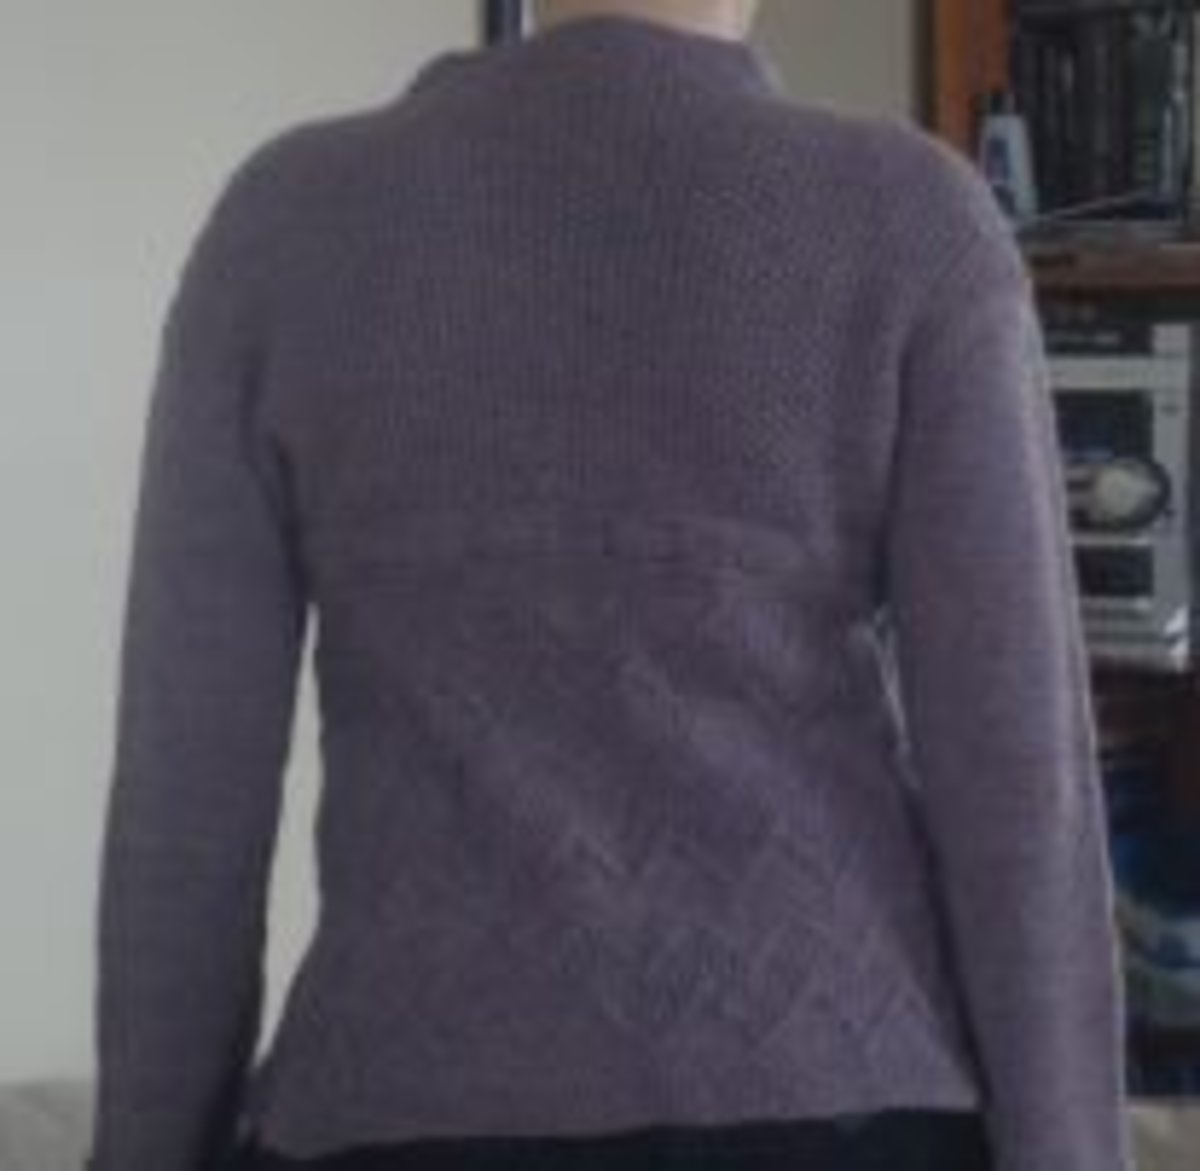 It lies flat, curves appropriately and the stitches are even. Overall, a better fit.